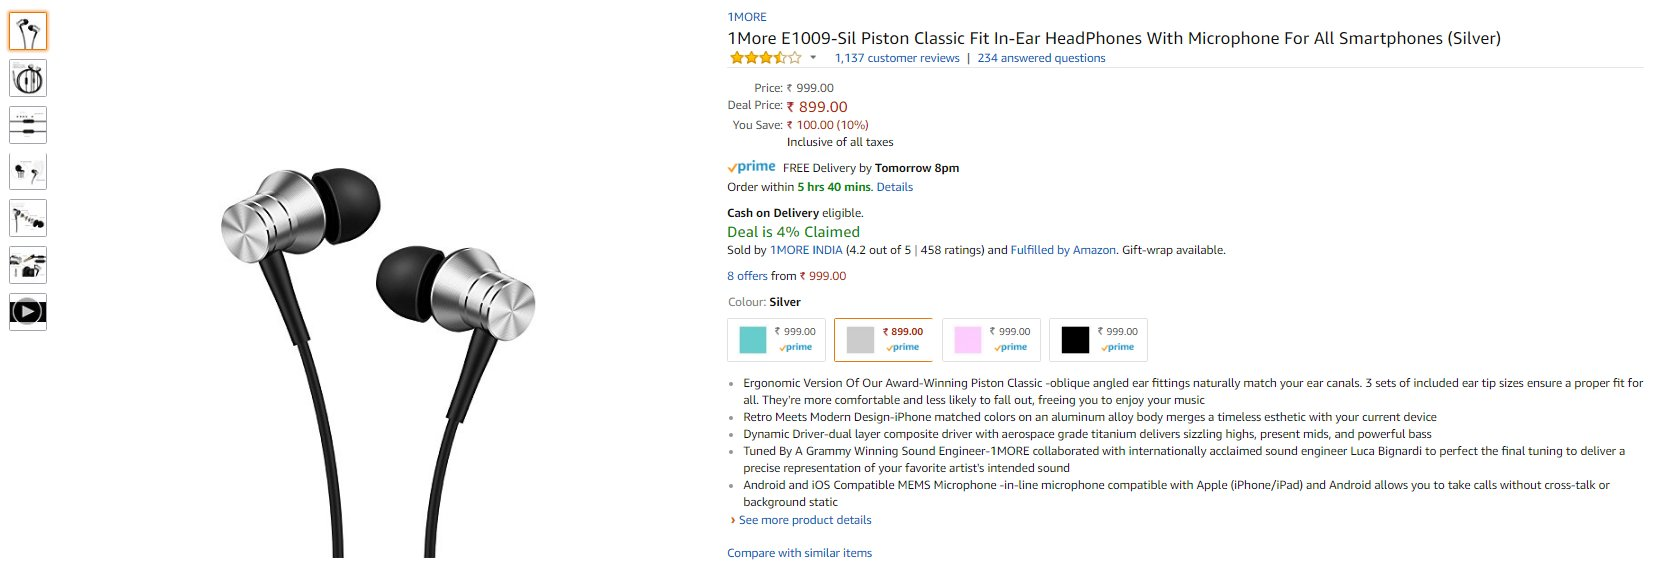 Dhananjay Bhosale On Twitter One Of The Best Earphones Under Rs Sony Mdr Xb55ap W White 1000 Buy Here Https Tco Sglc2vczbq Review Ssgqa7dpur For Around